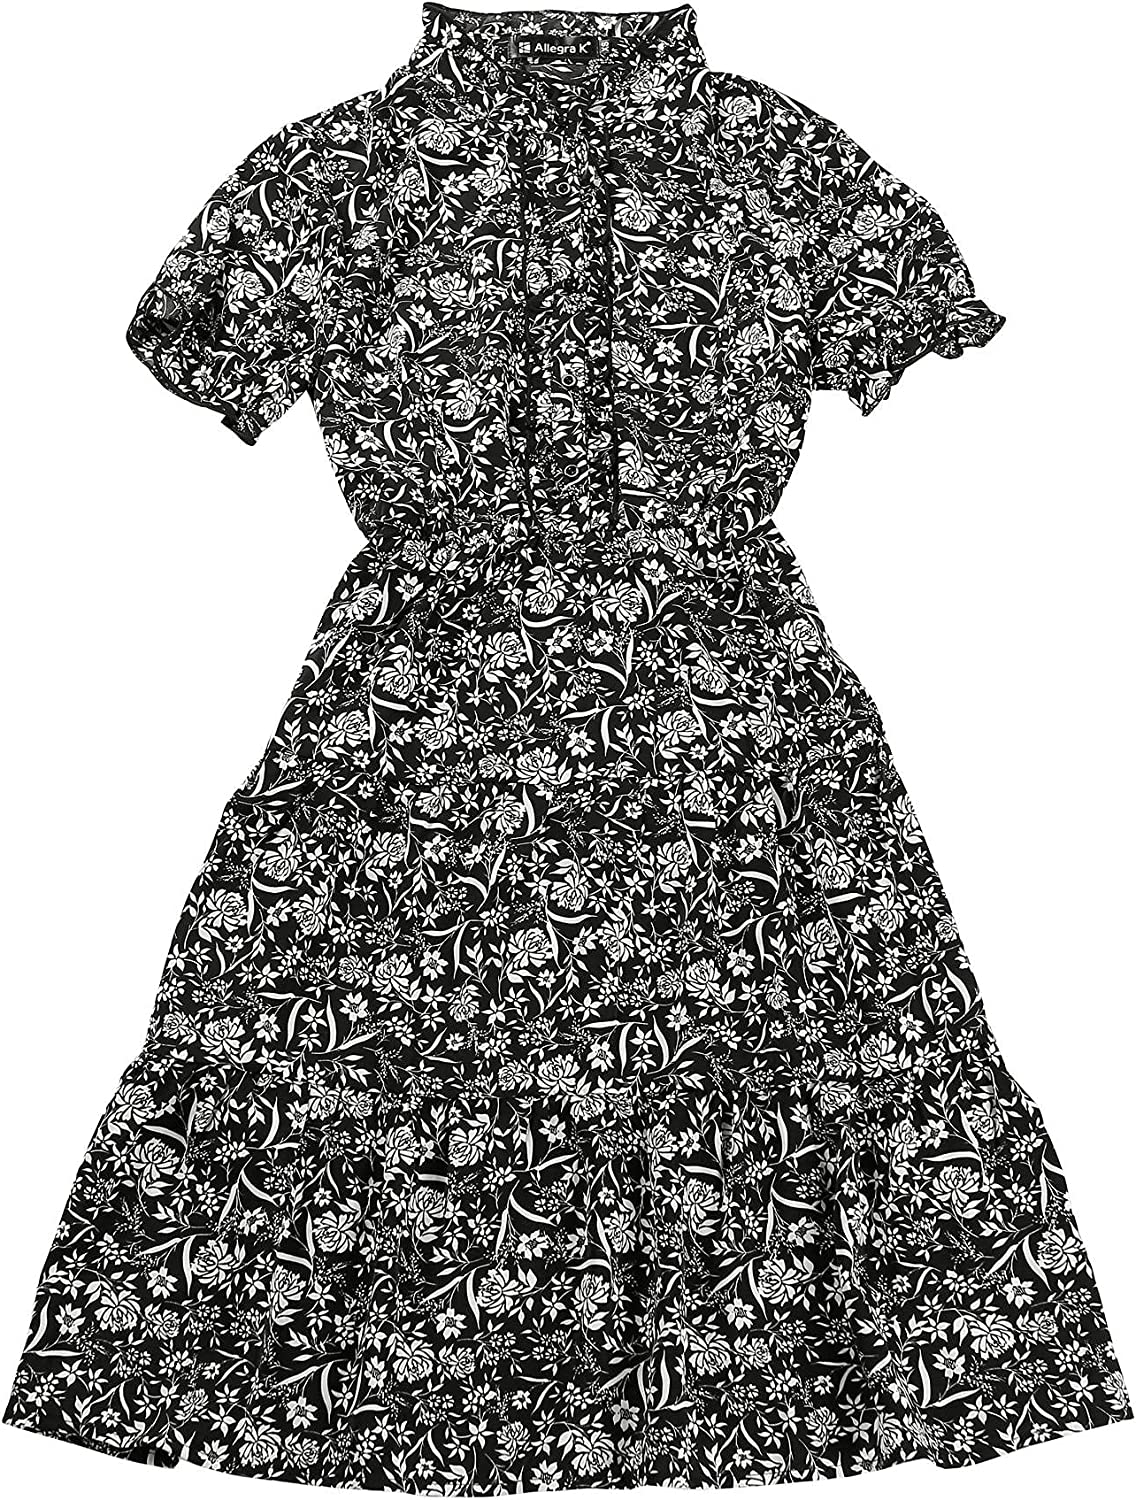 Allegra K Women's Boho Floral Button Flare 毎日激安特売で 営業中です 格安店 Ruffle Fit Front and